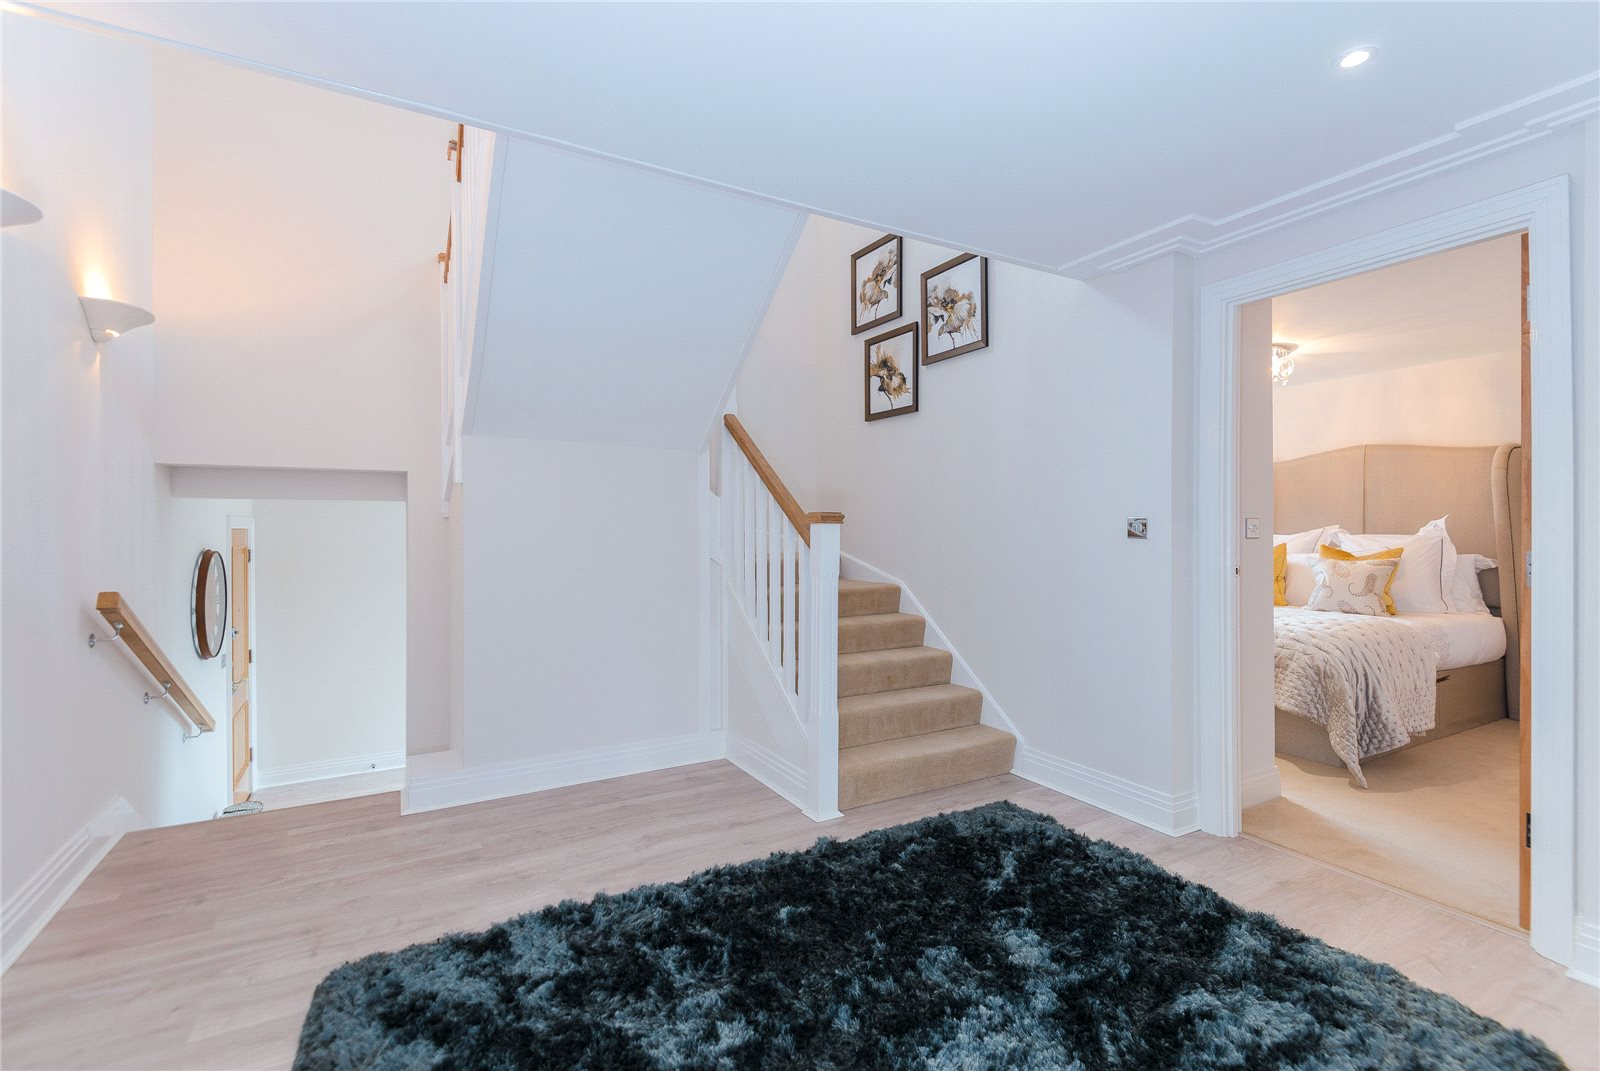 Additional photo for property listing at Scholars Place, South Park Drive, Gerrards Cross, Buckinghamshire, SL9 Gerrards Cross, 英格兰